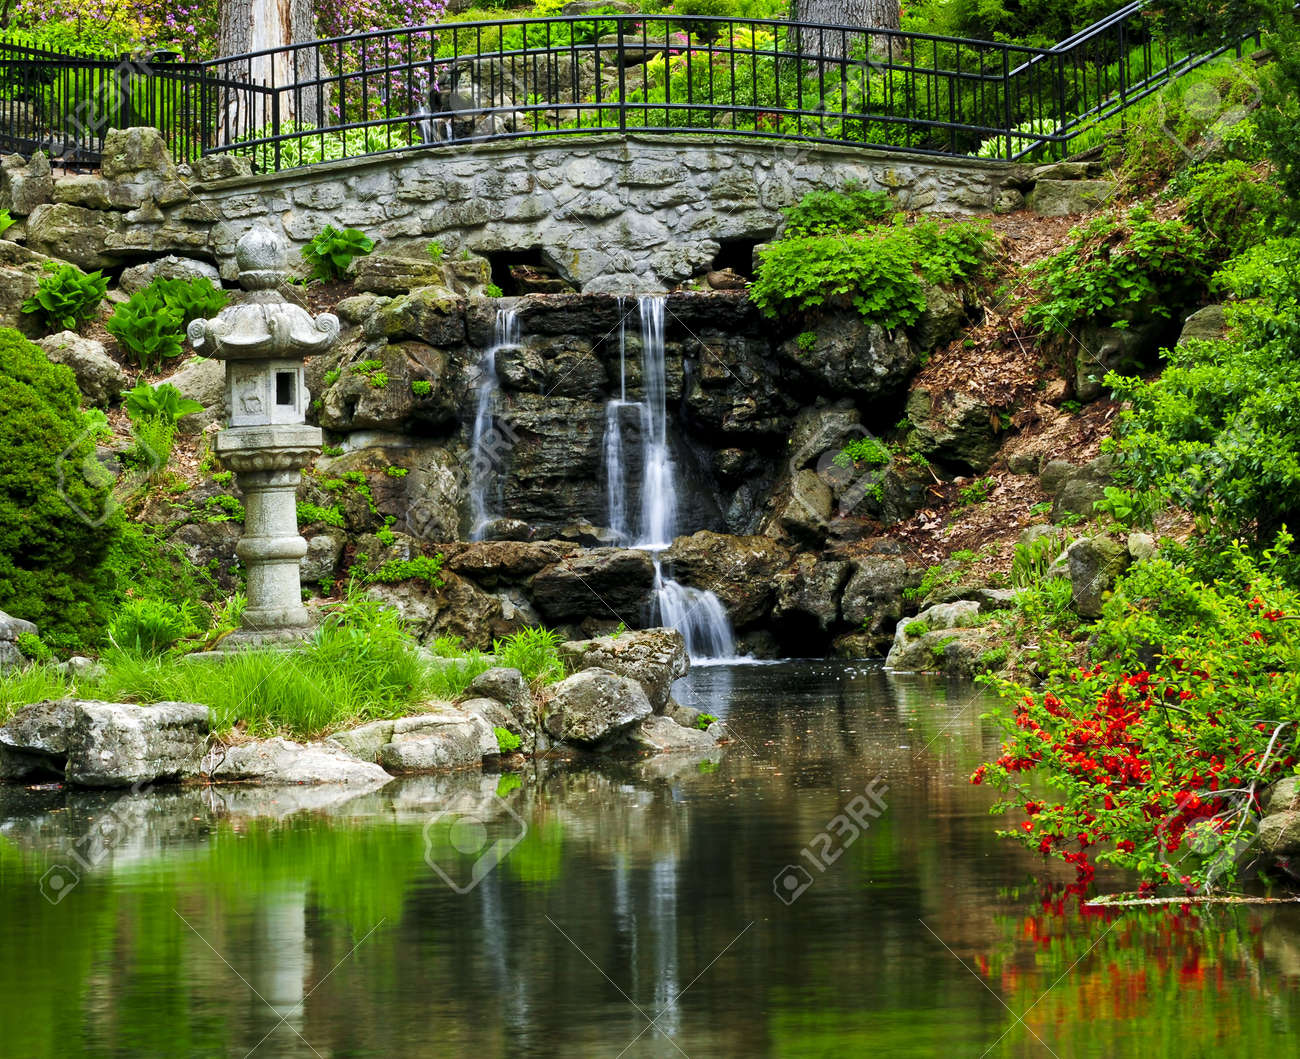 Cascading waterfall and pond in japanese garden Stock Photo - 3143671